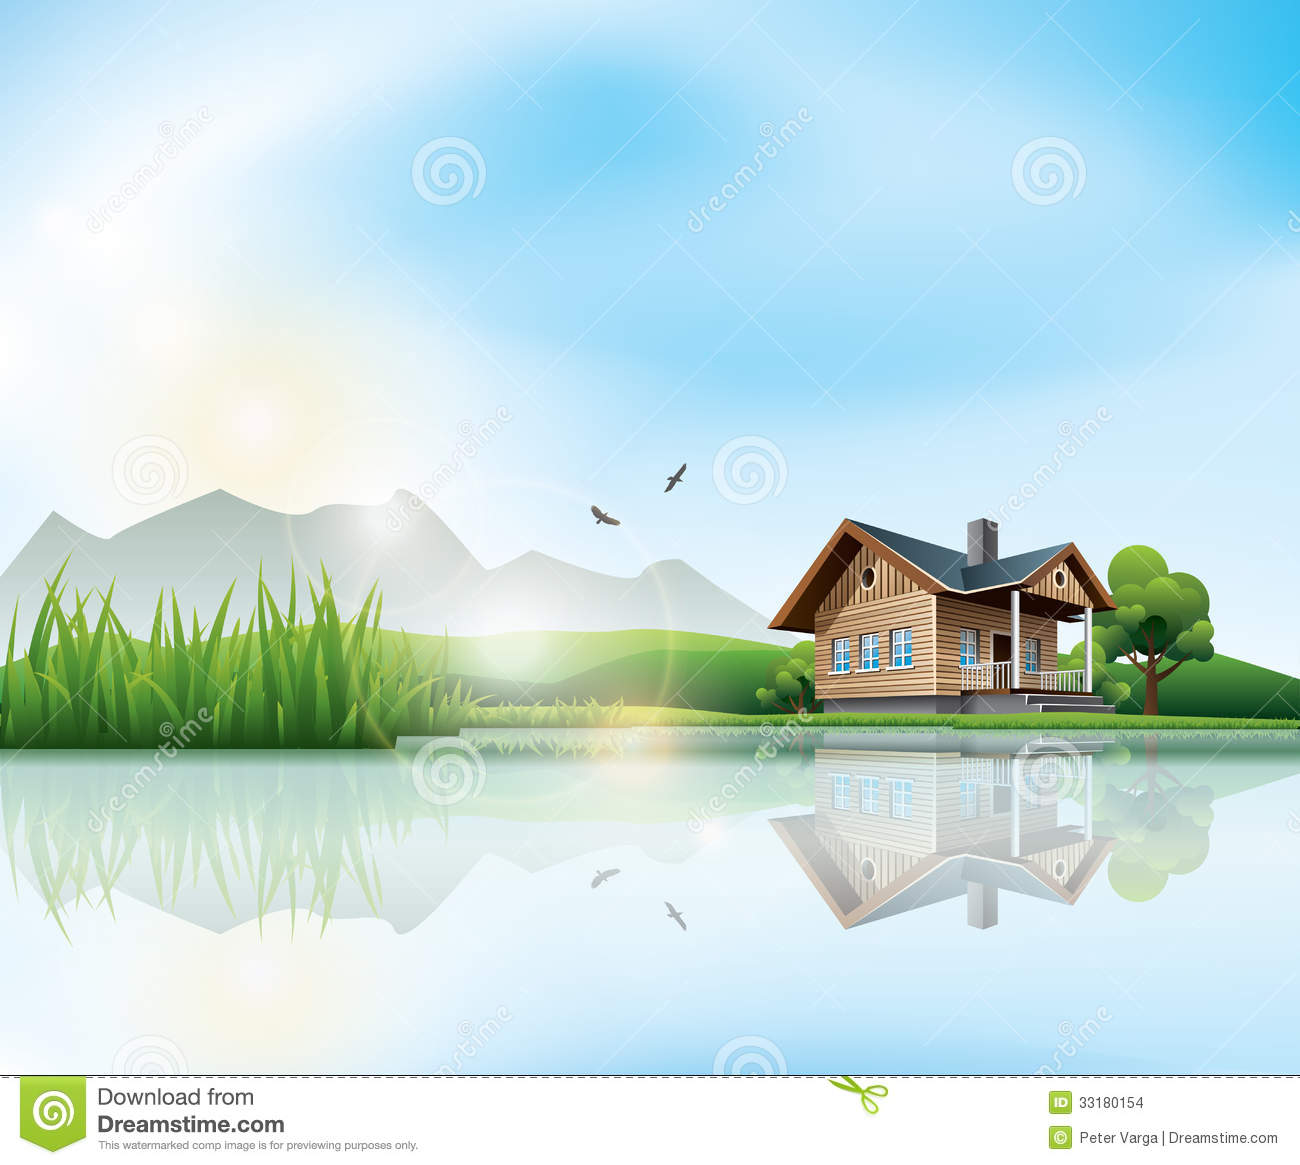 Landscape Illustration Vector Free: House At The Lake Stock Vector. Illustration Of Grass